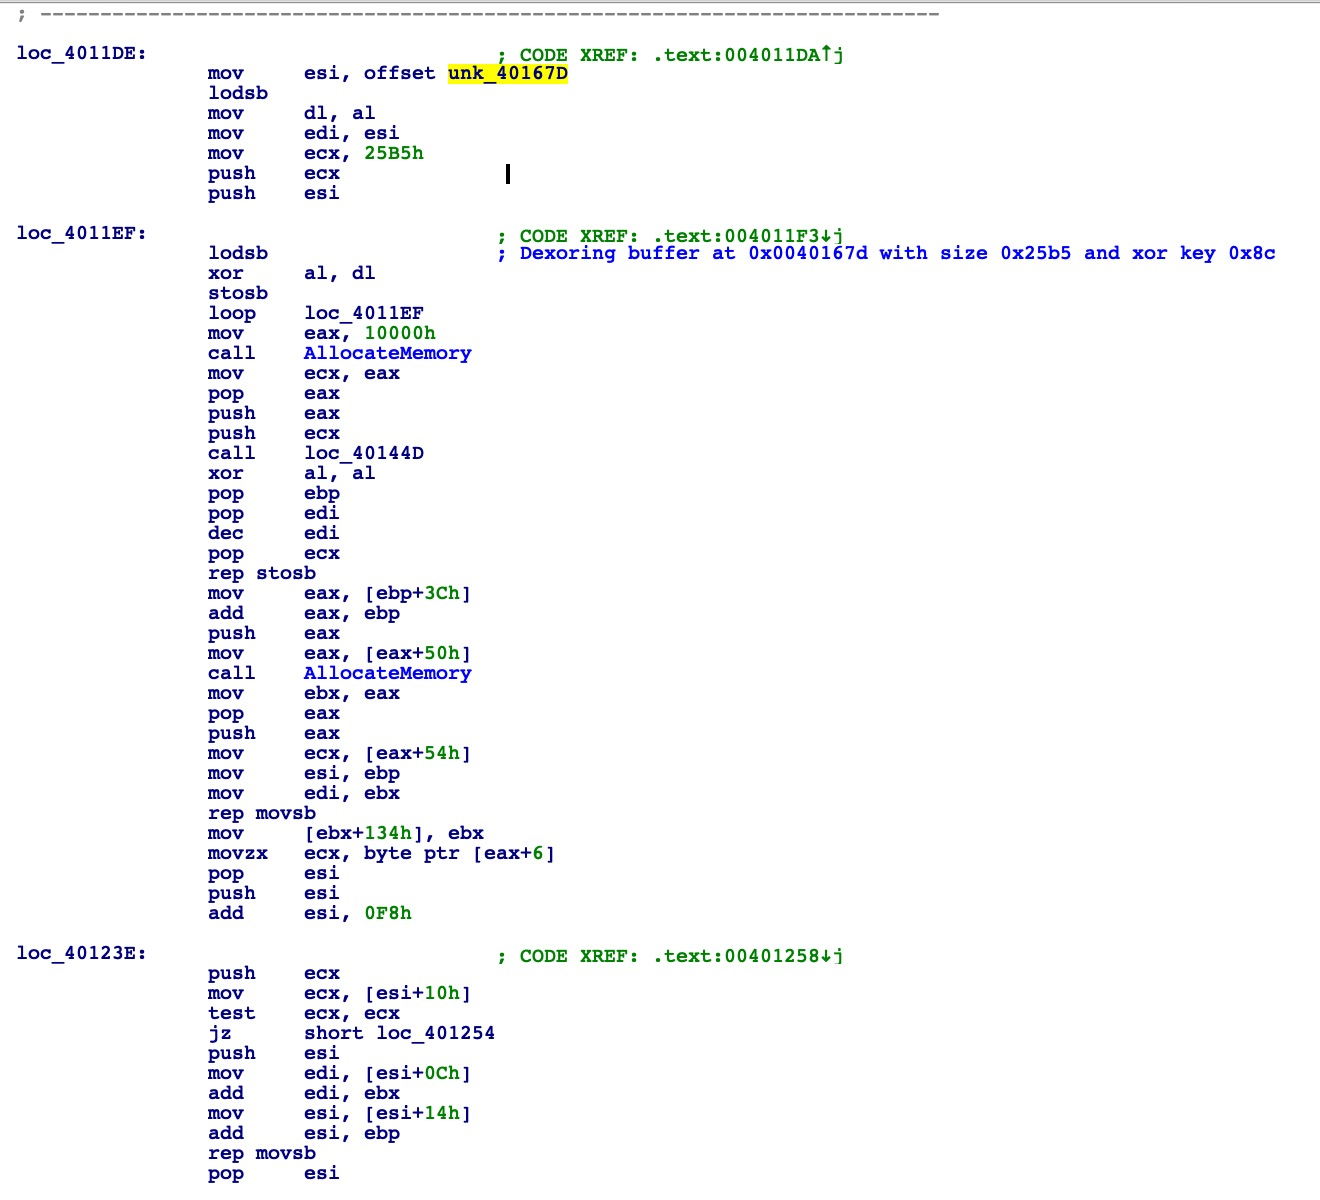 image of obfuscated payload